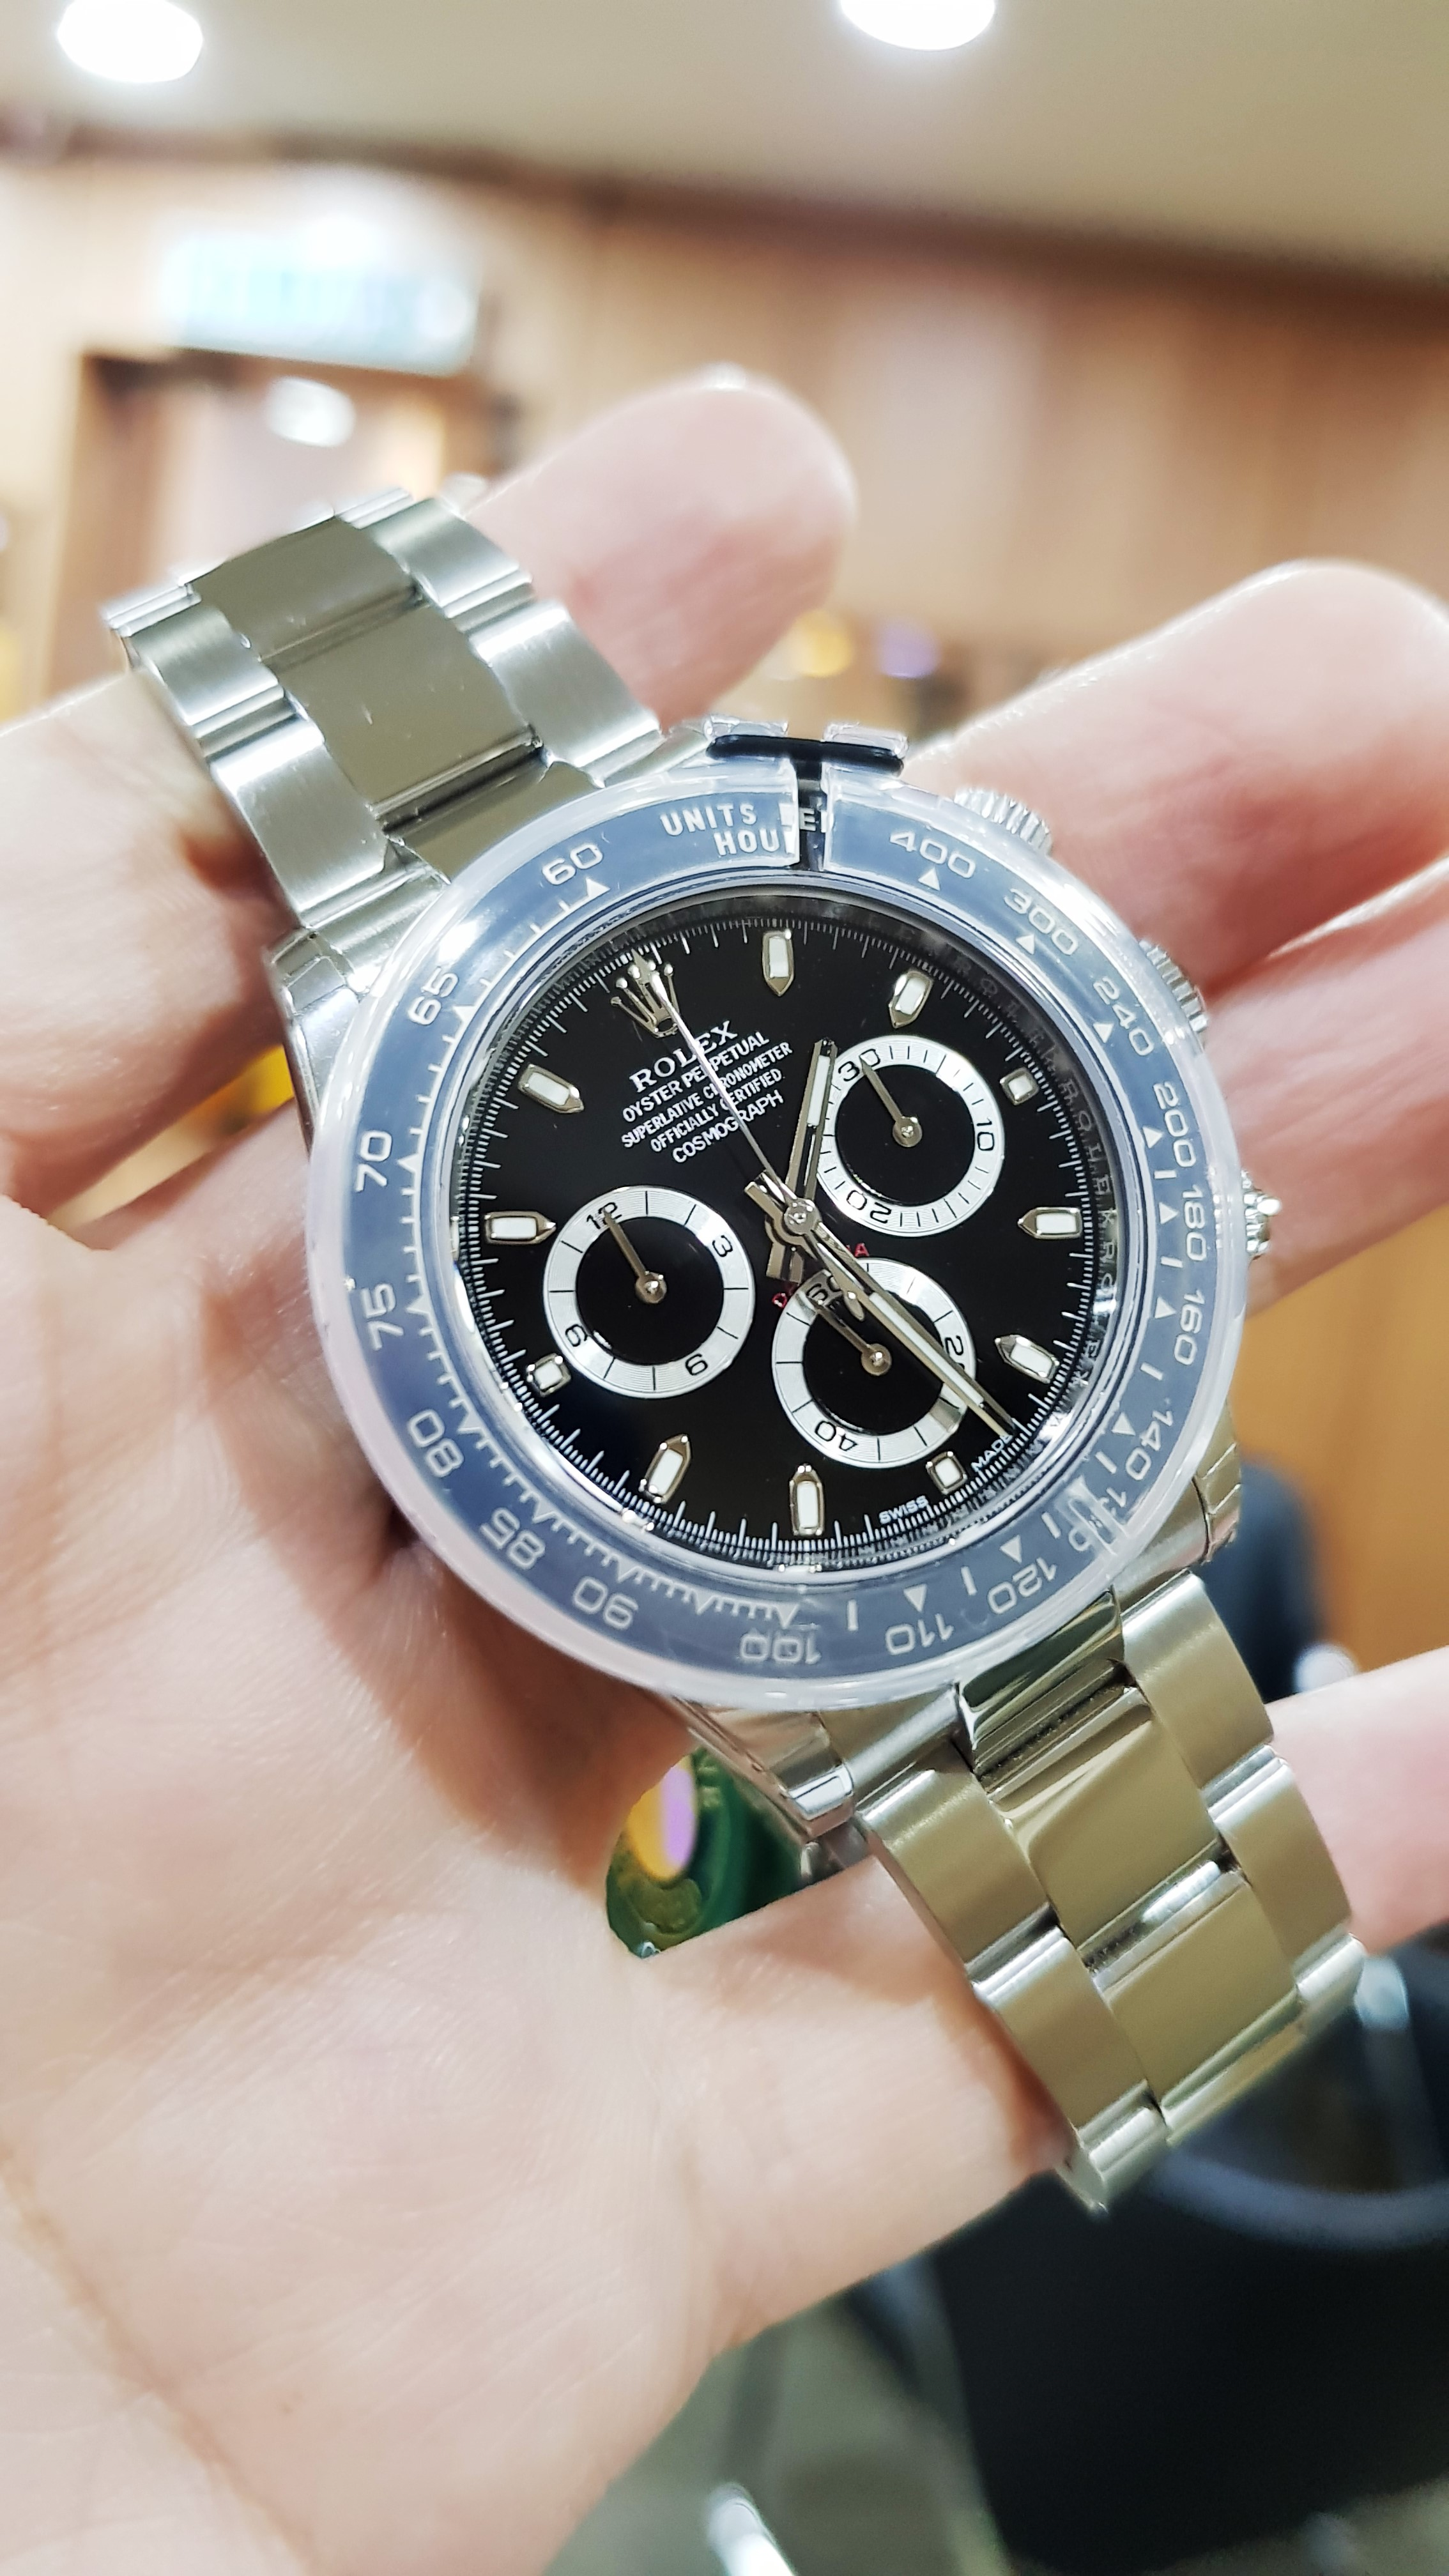 brand new rolex daytona 116500ln 2018 swiss hour. Black Bedroom Furniture Sets. Home Design Ideas